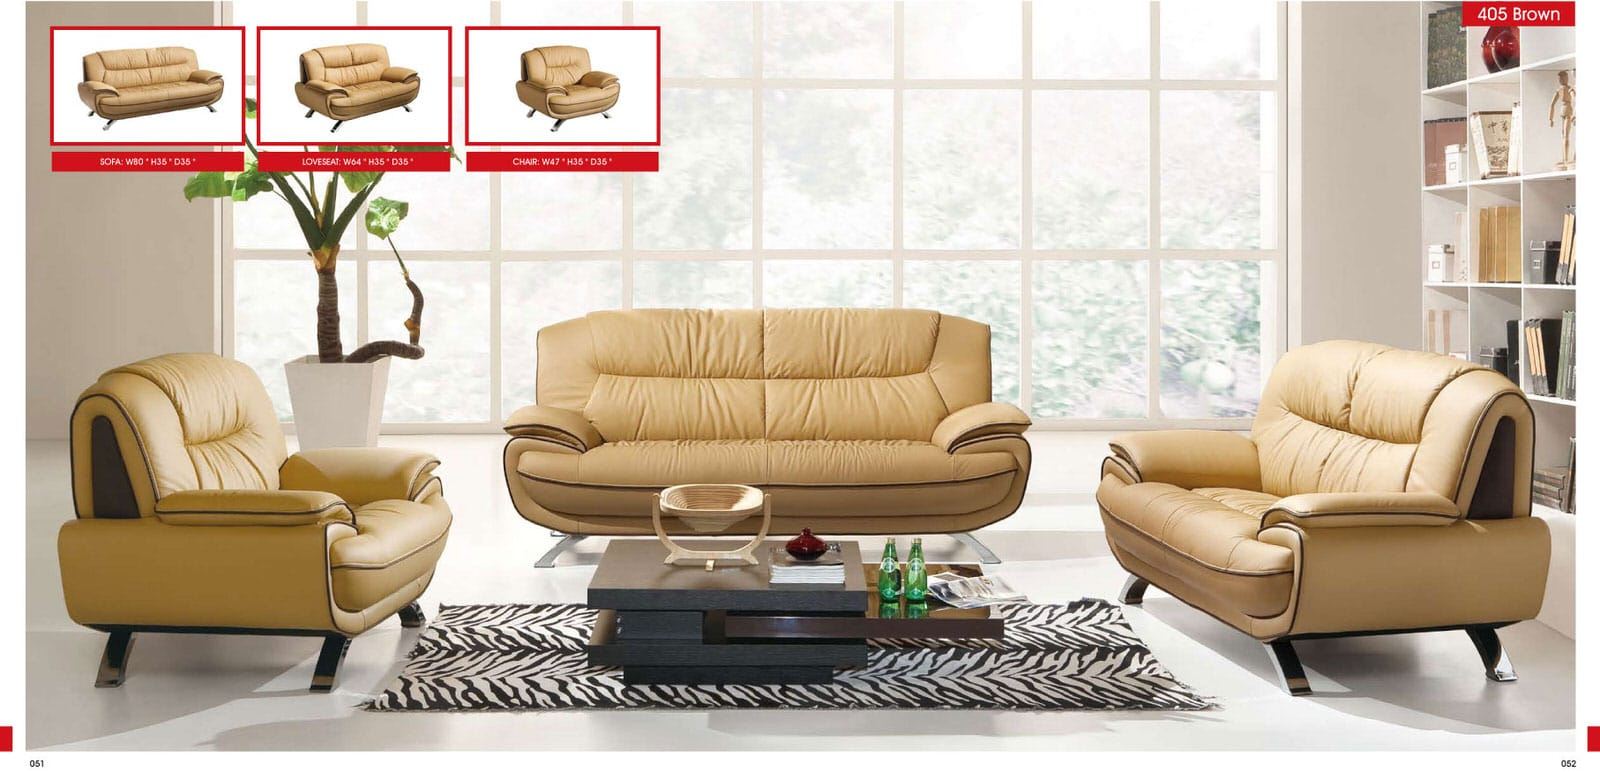 big living room chairs 405 brown leather sofa set by esf 13464